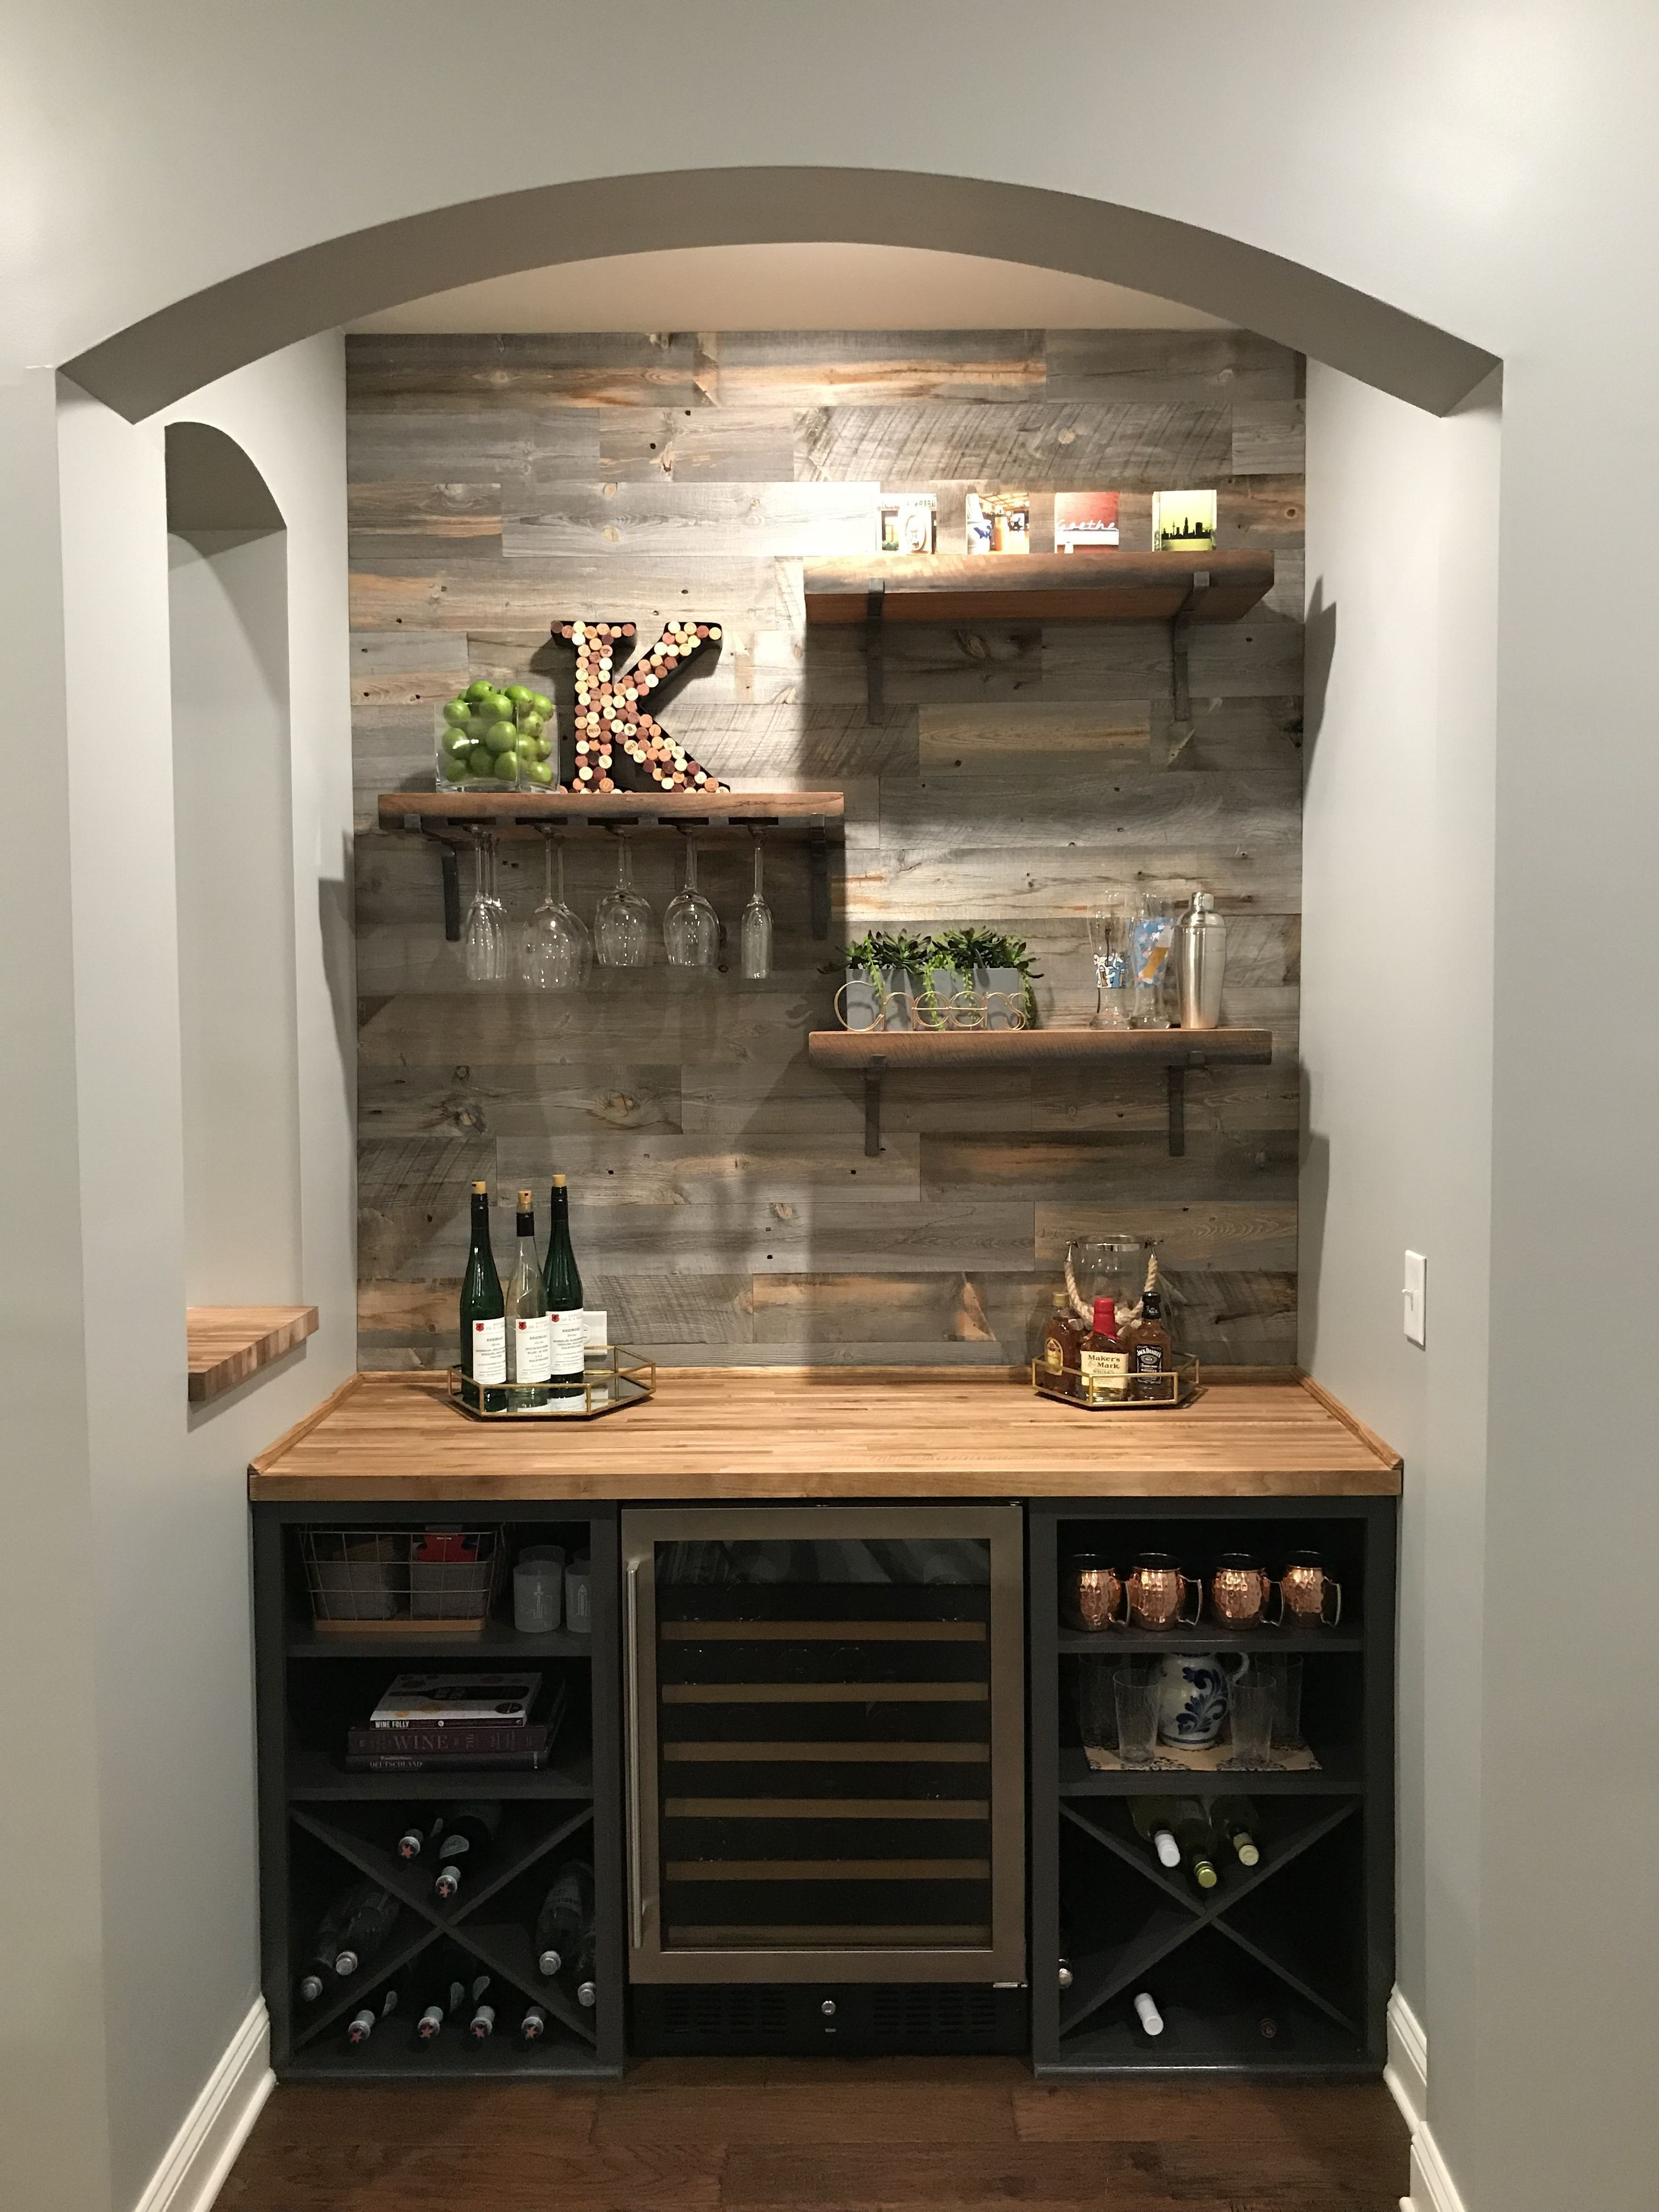 Home Bar Essentials 9 Items For The Perfect Home Bar Home Bar Furniture Home Bar Designs Bars For Home